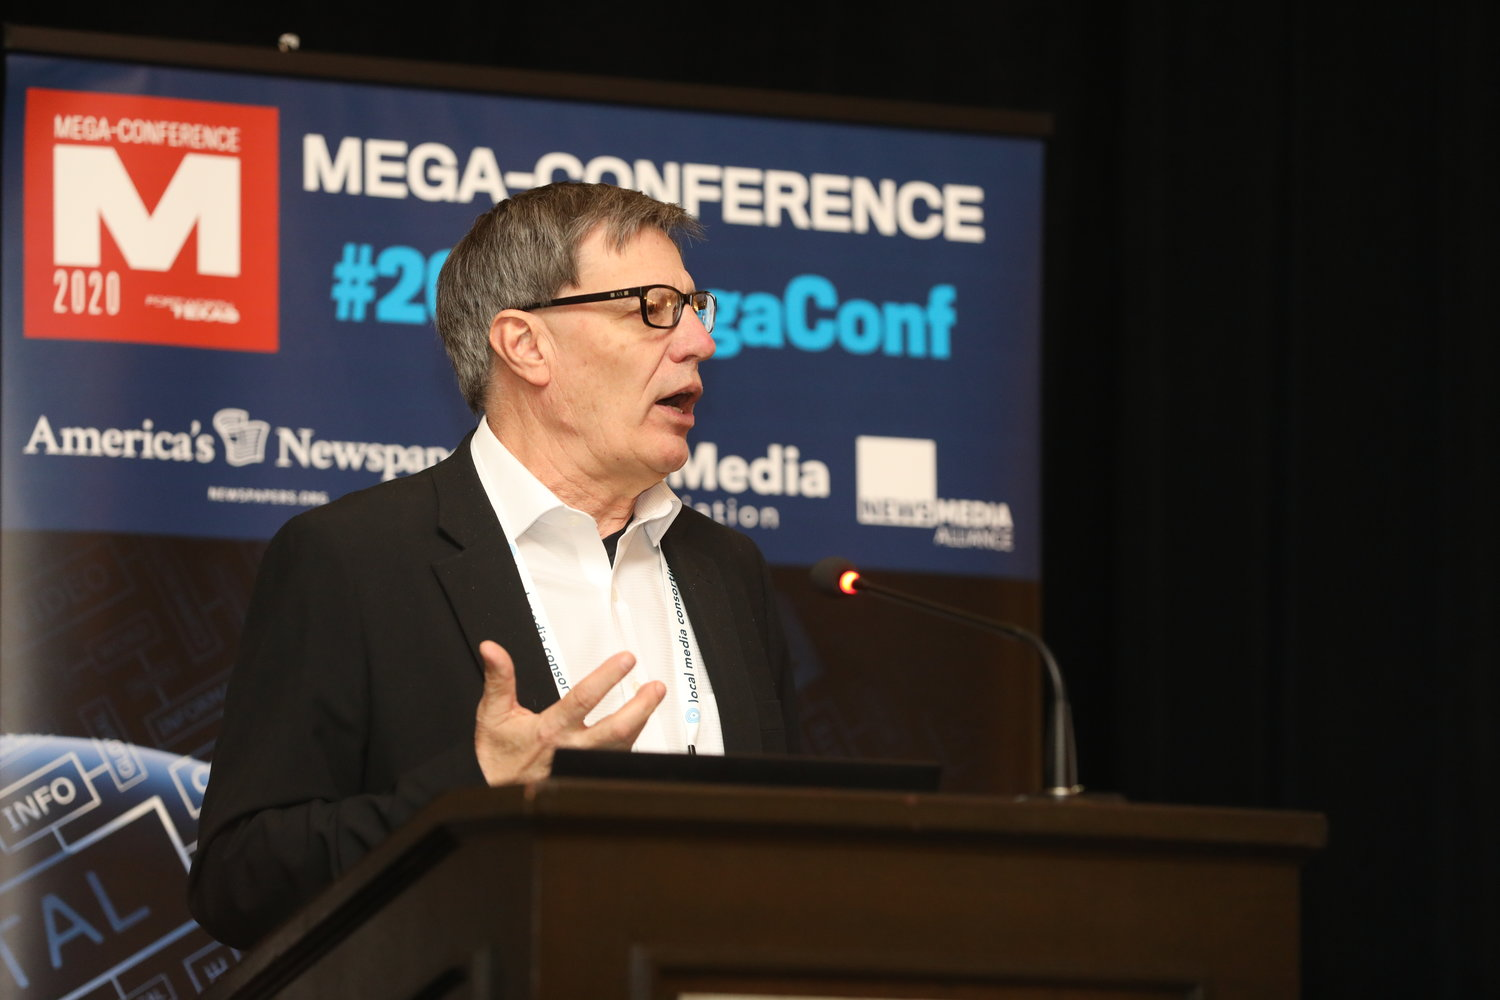 Jim Stevenson of Spinal Column Newsweekly Media at the 2020 Mega-Conference. (Photo by Bob Booth)